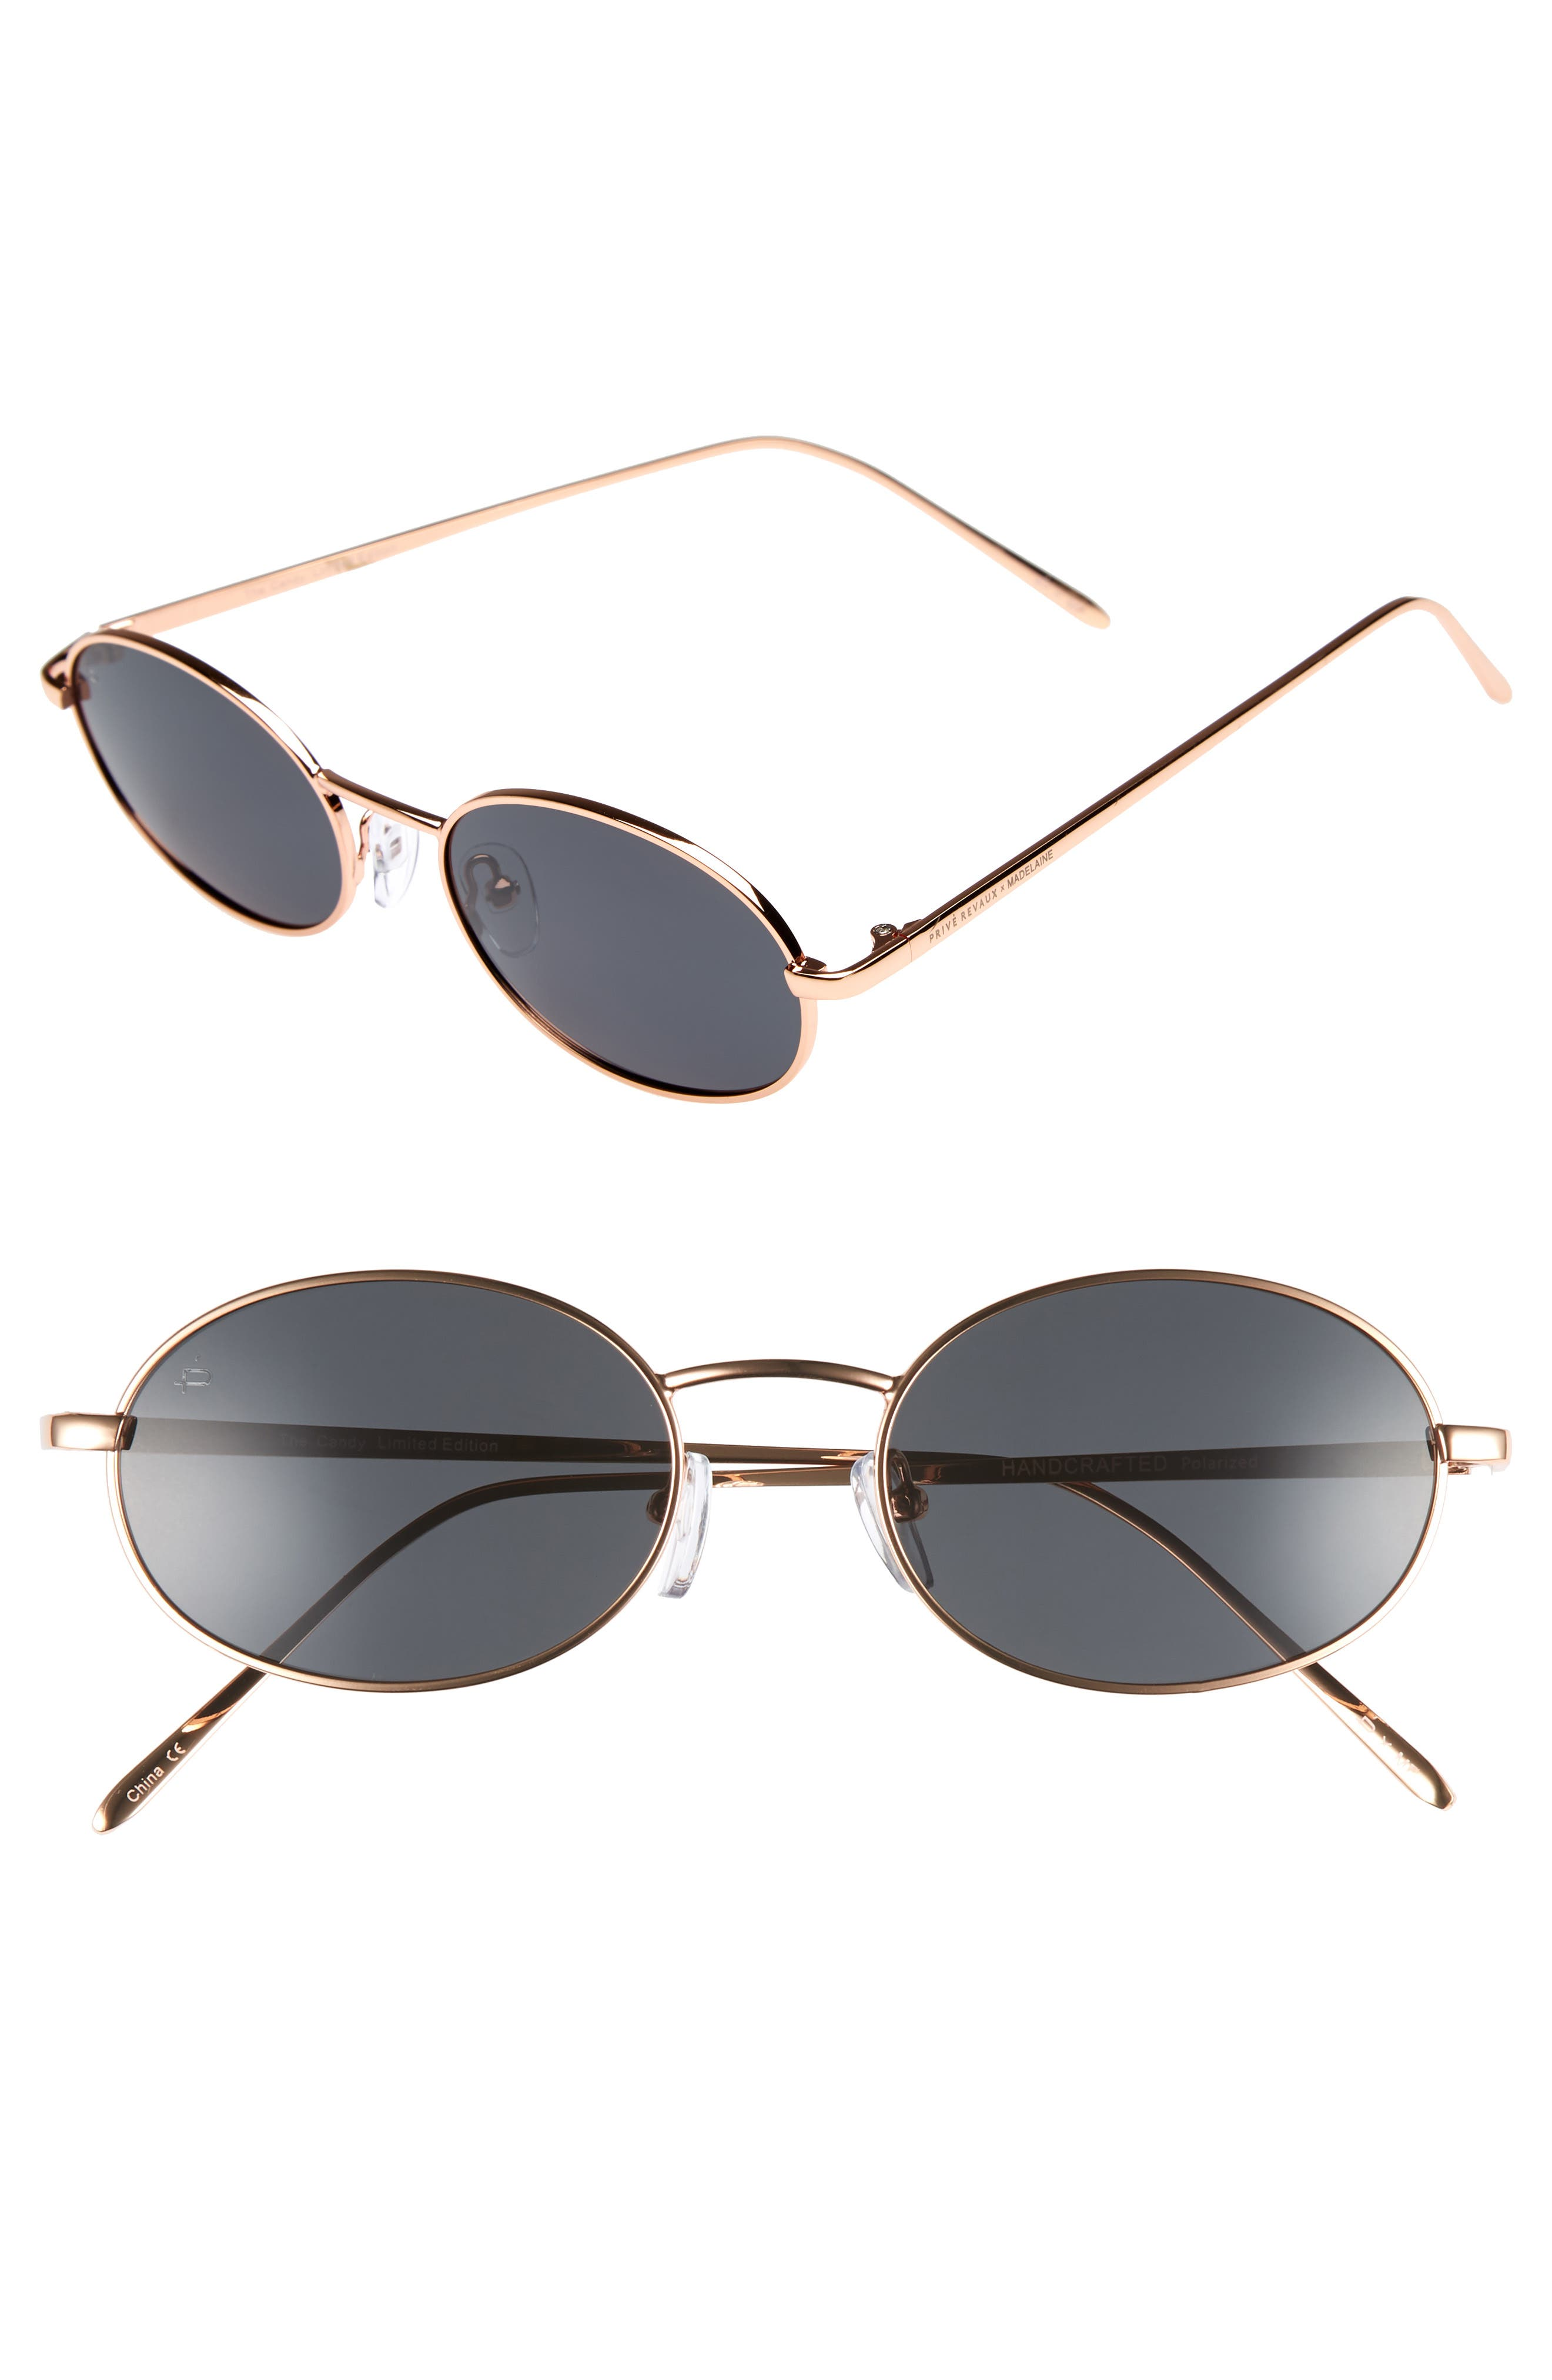 Privé Revaux x Madelaine Petsch The Candy 50mm Round Sunglasses,                             Main thumbnail 1, color,                             Gold/ Smoke